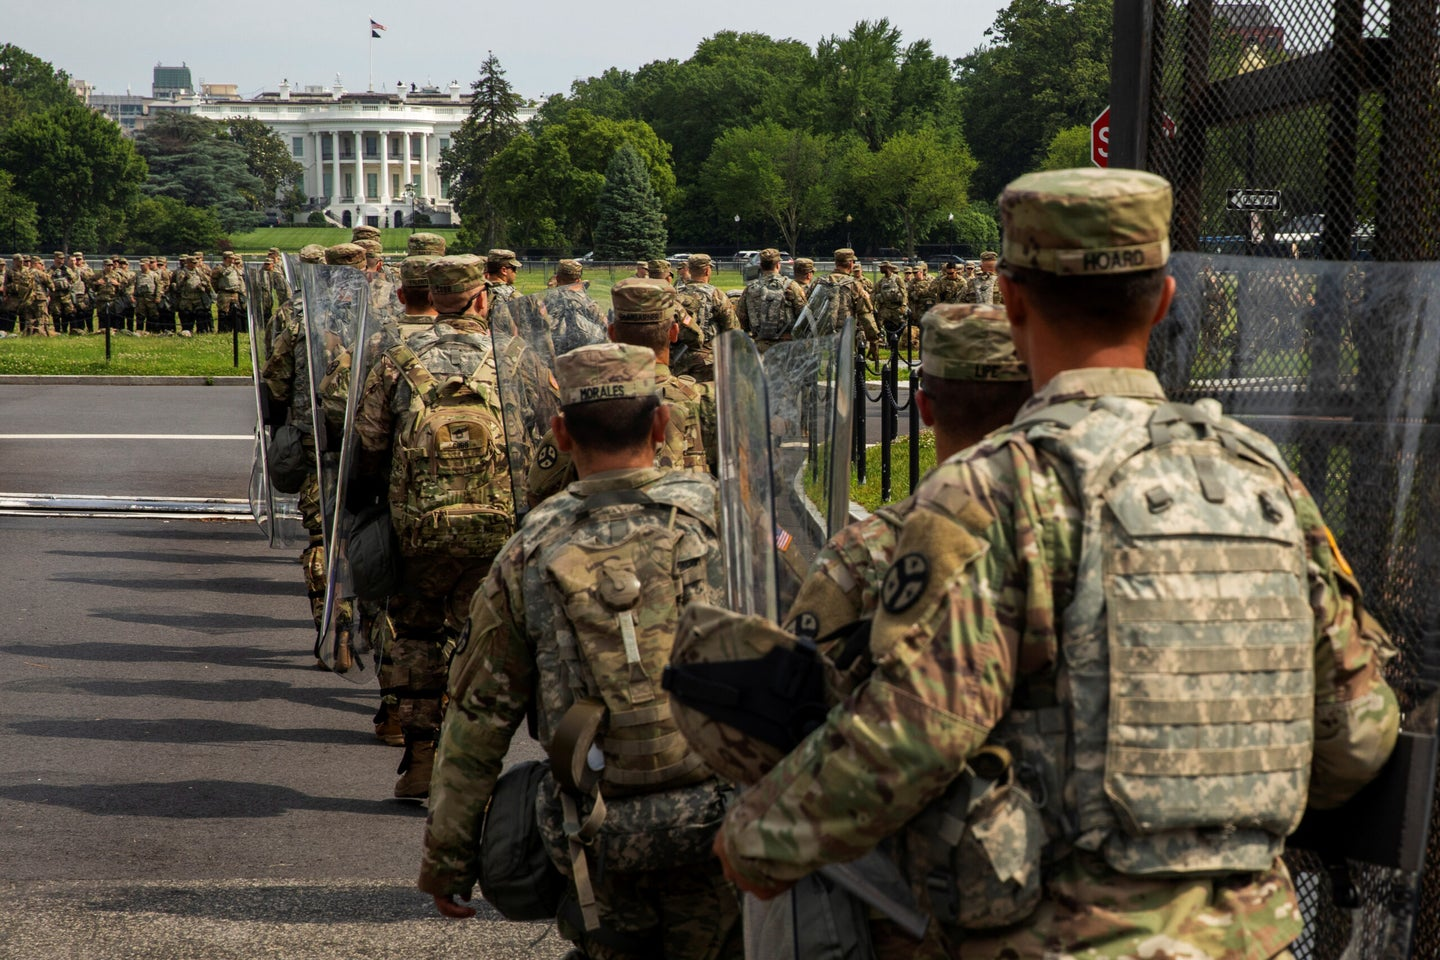 Trump is just itching to declare martial law